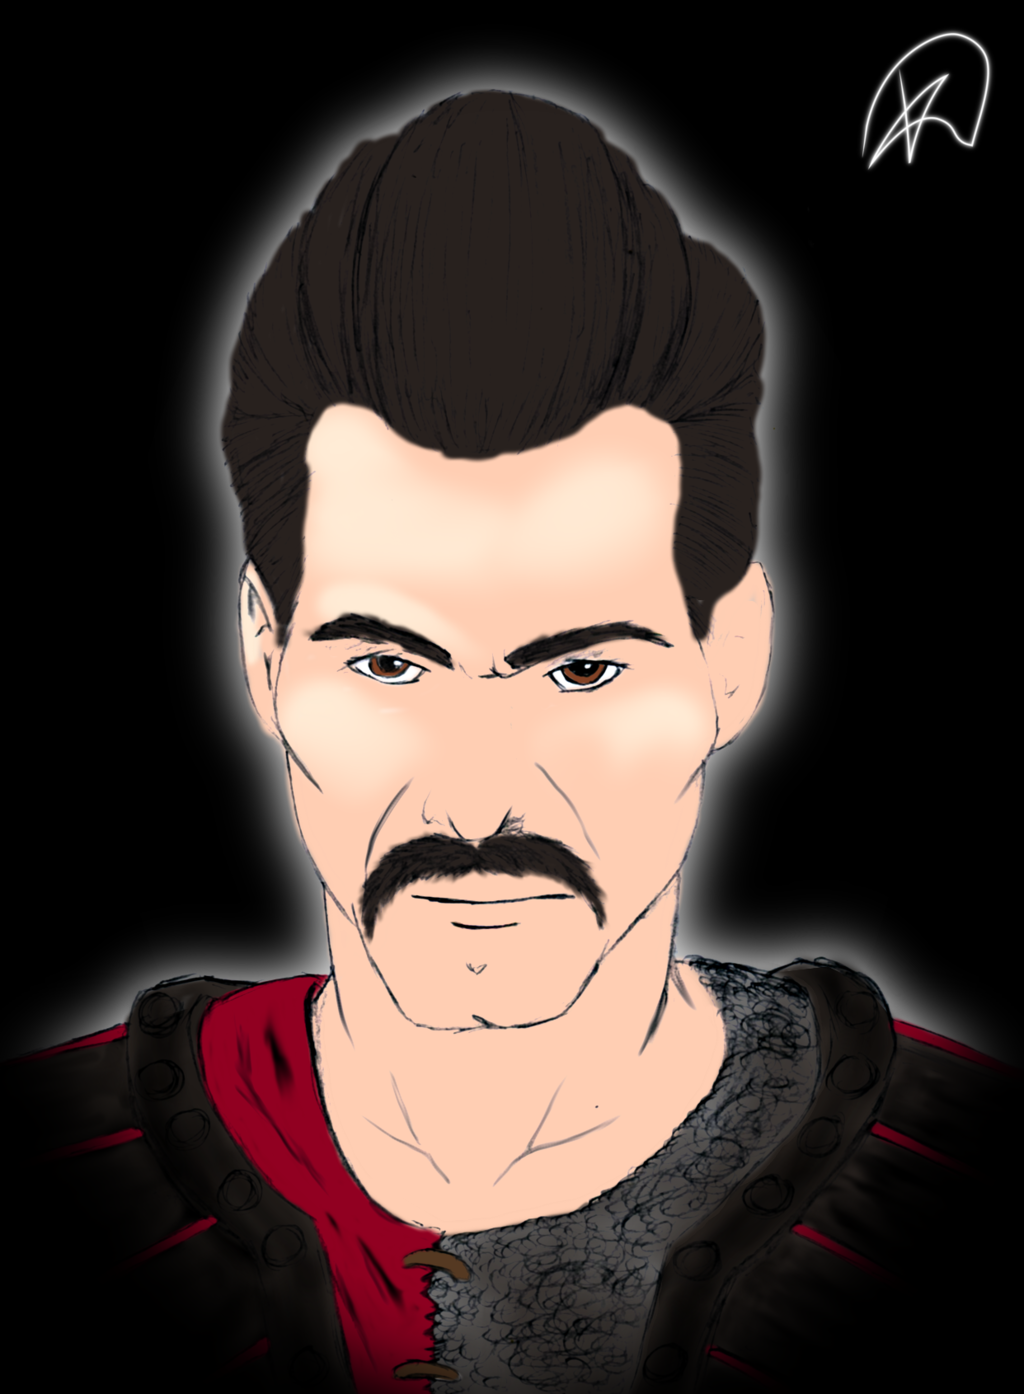 gothic___diego_young_by_drillidrive-dbtn2uy.png